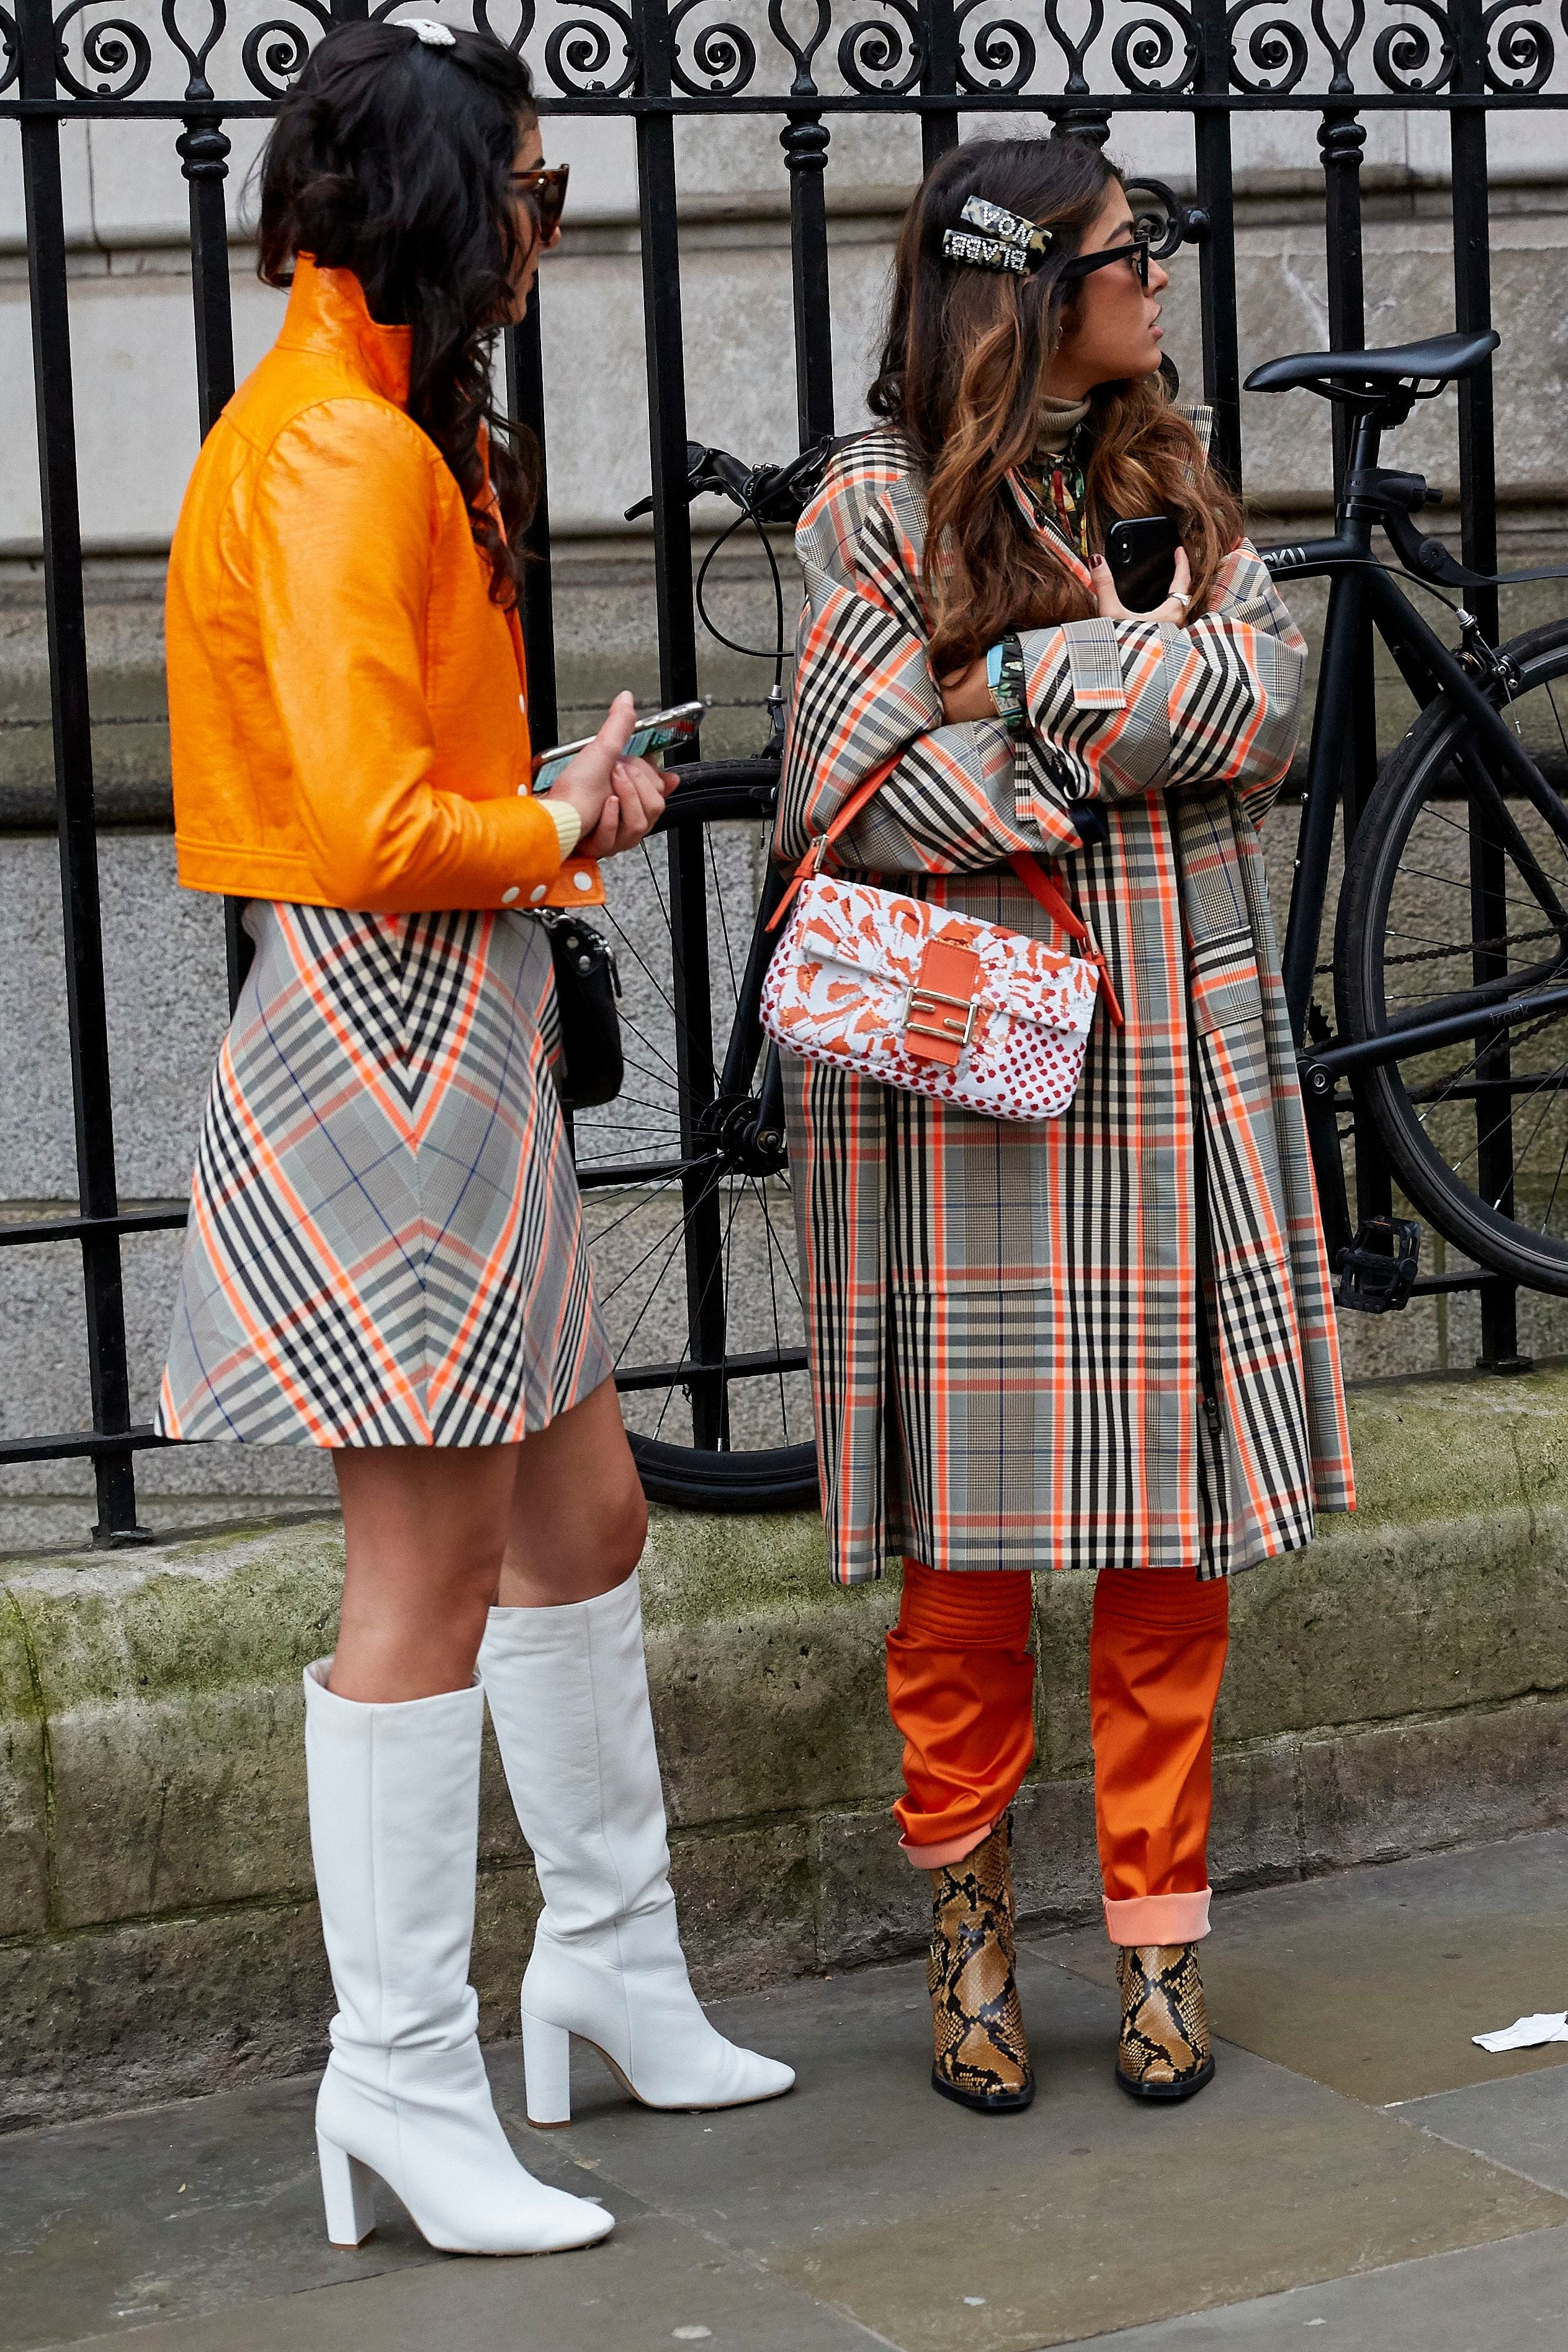 LFW hair street style: Two women with long brown hair with bold hair clips wearing checked outfits.